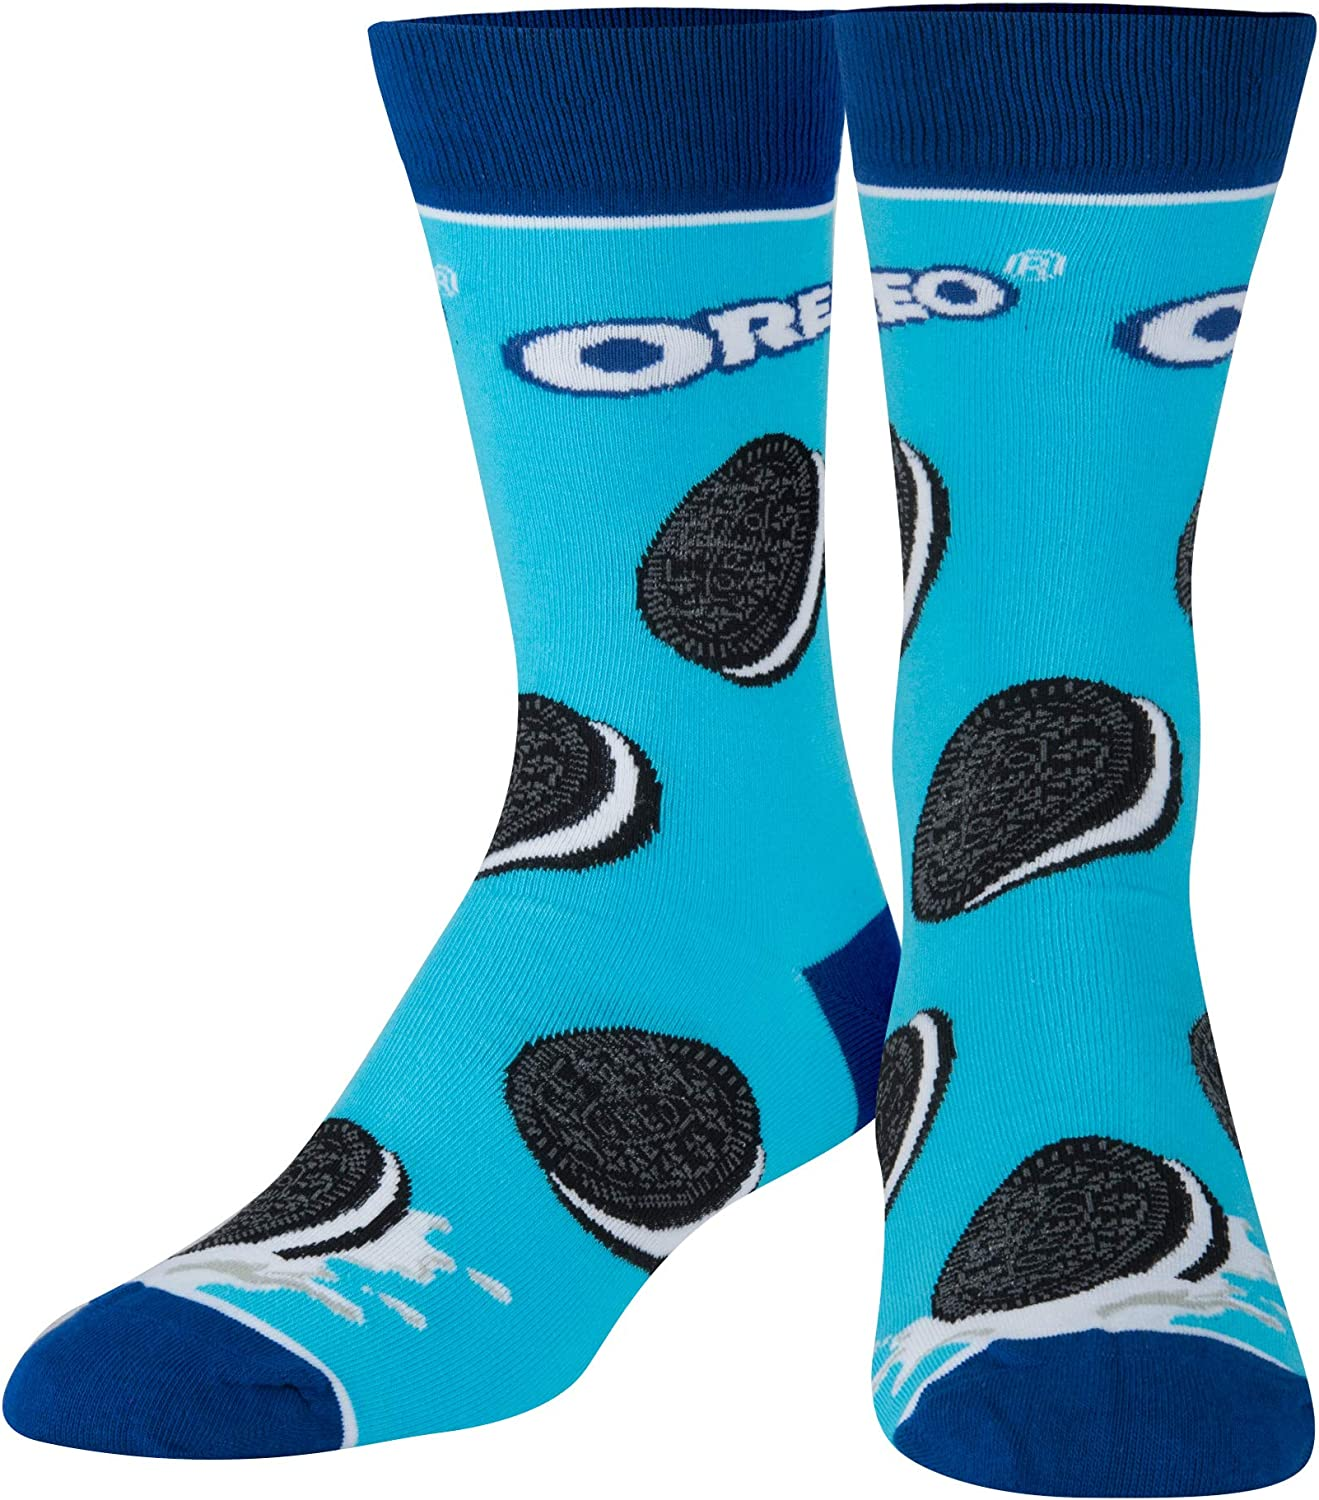 Cool Socks, Unisex, Food, Snacks Cookies Chips, Crew, Novelty Funny Crazy Silly Retro